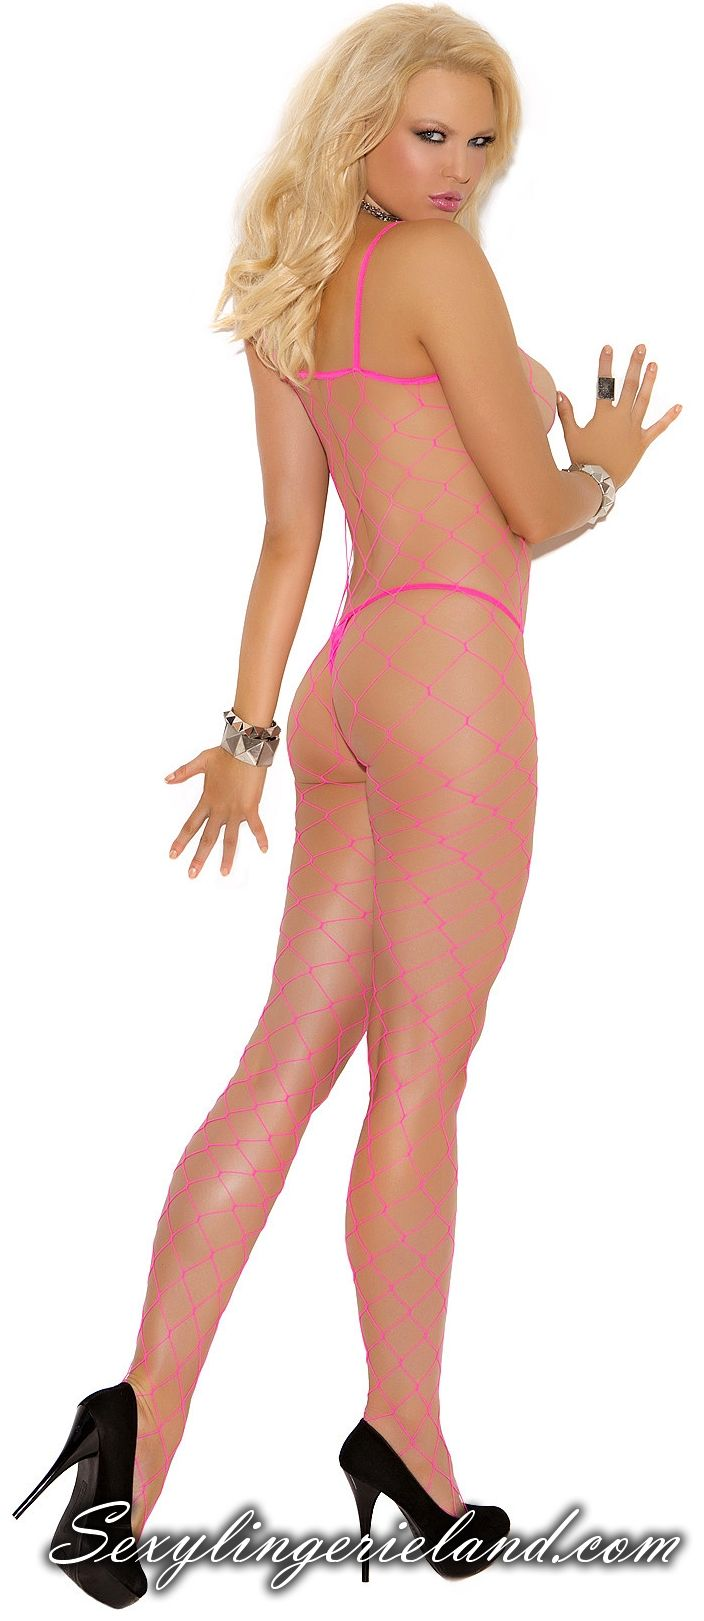 dd8cabf16 EM-1622 Lycra diamond net bodystocking  15.00 Have spicy time with your  lover